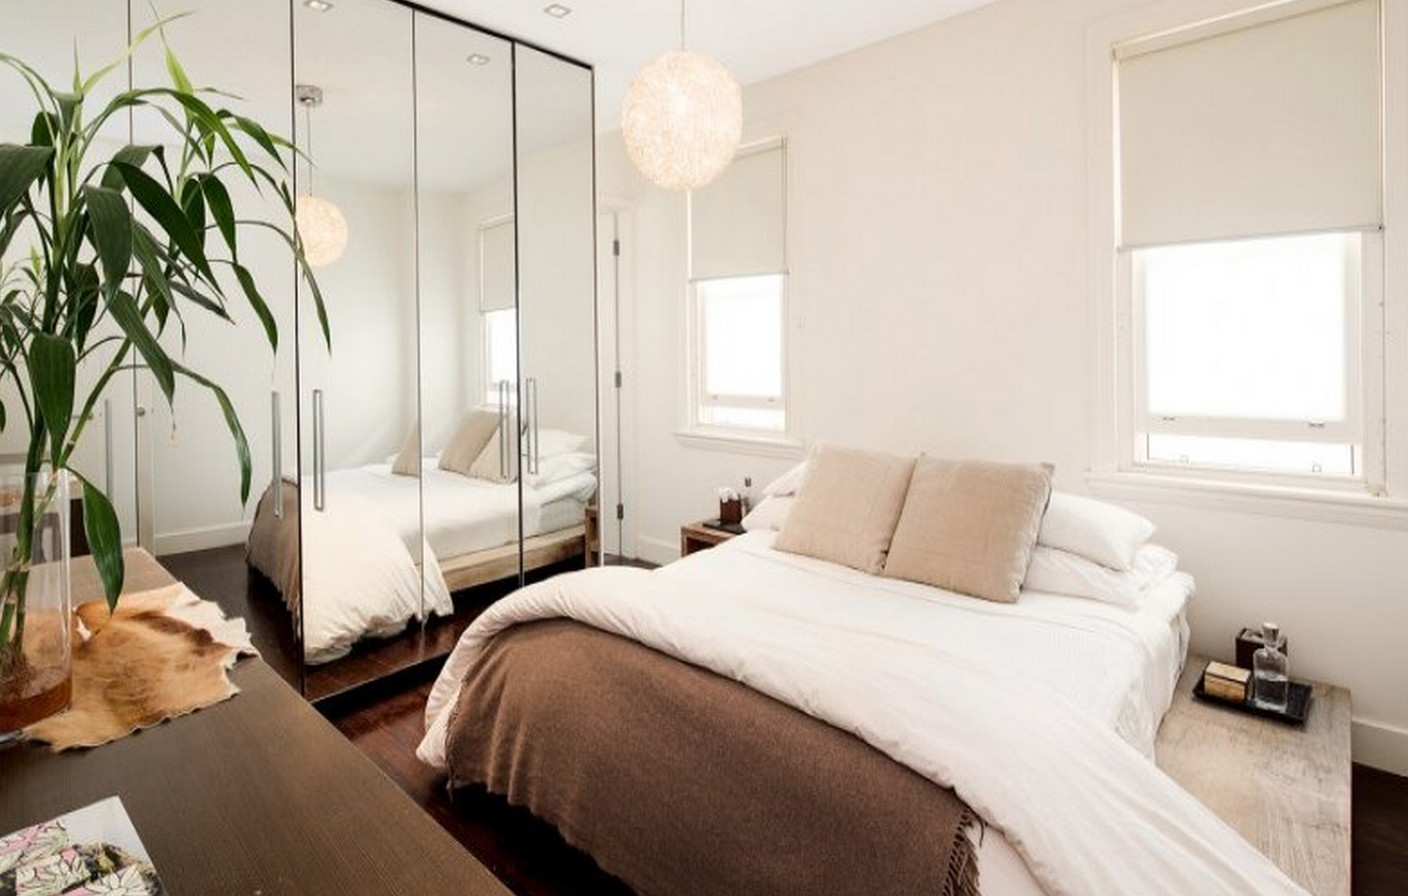 Big W Bed 7 Ways To Make A Small Bedroom Look Bigger Realestate Au